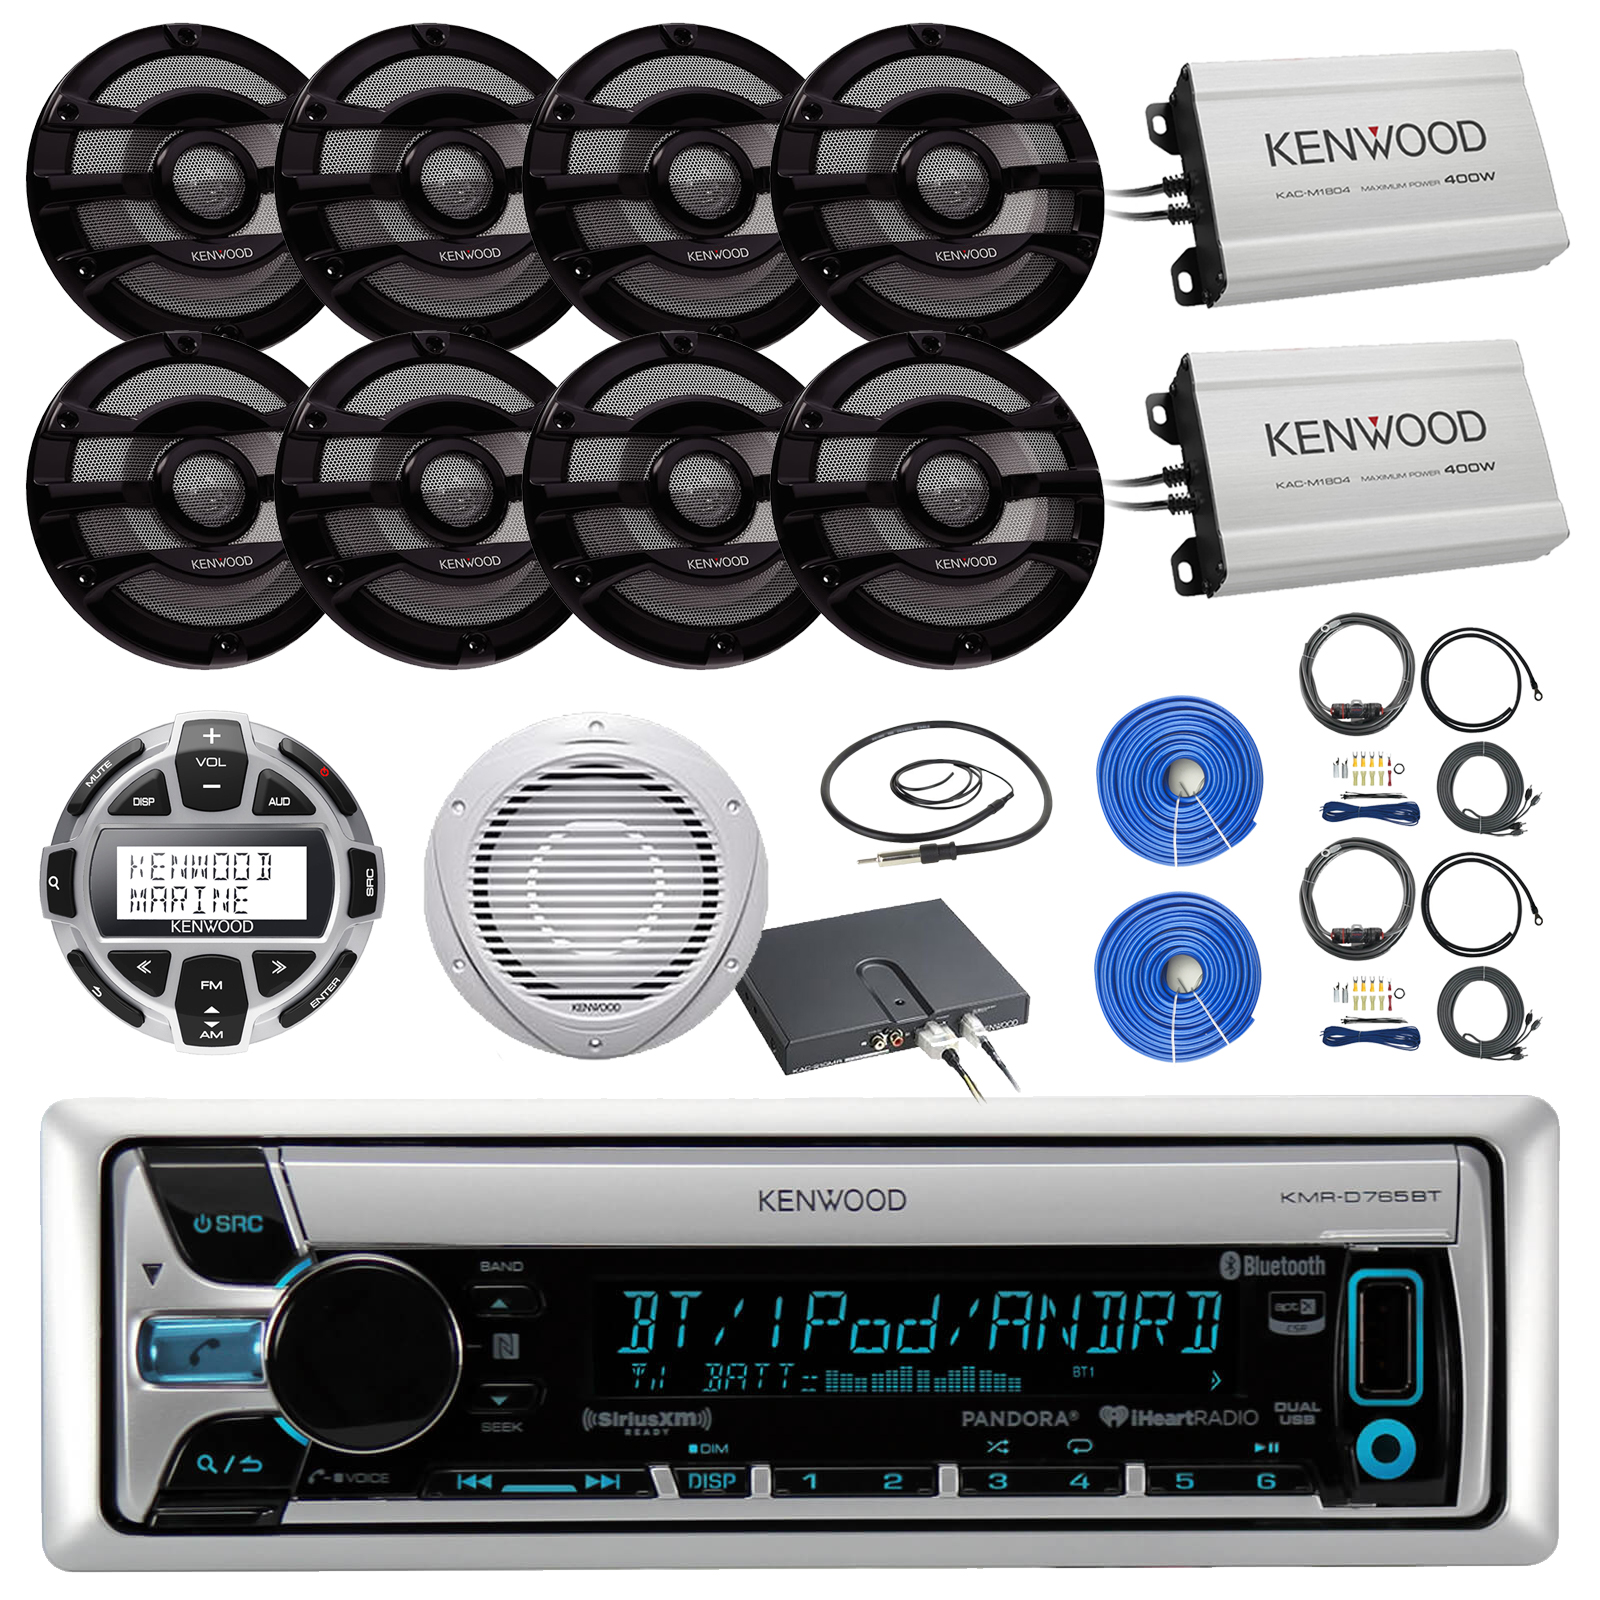 """36' - 42' Boat System: Kenwood CD MP3 Bluetooth Receiver, 8 x 8"""" 2 Way Speakers Black, Remote Control, 2 x 4-channel Amp, 2 x Amp Installation Kit, 10"""" Woofer, 100ft Speaker Wire, Antenna – 22"""""""